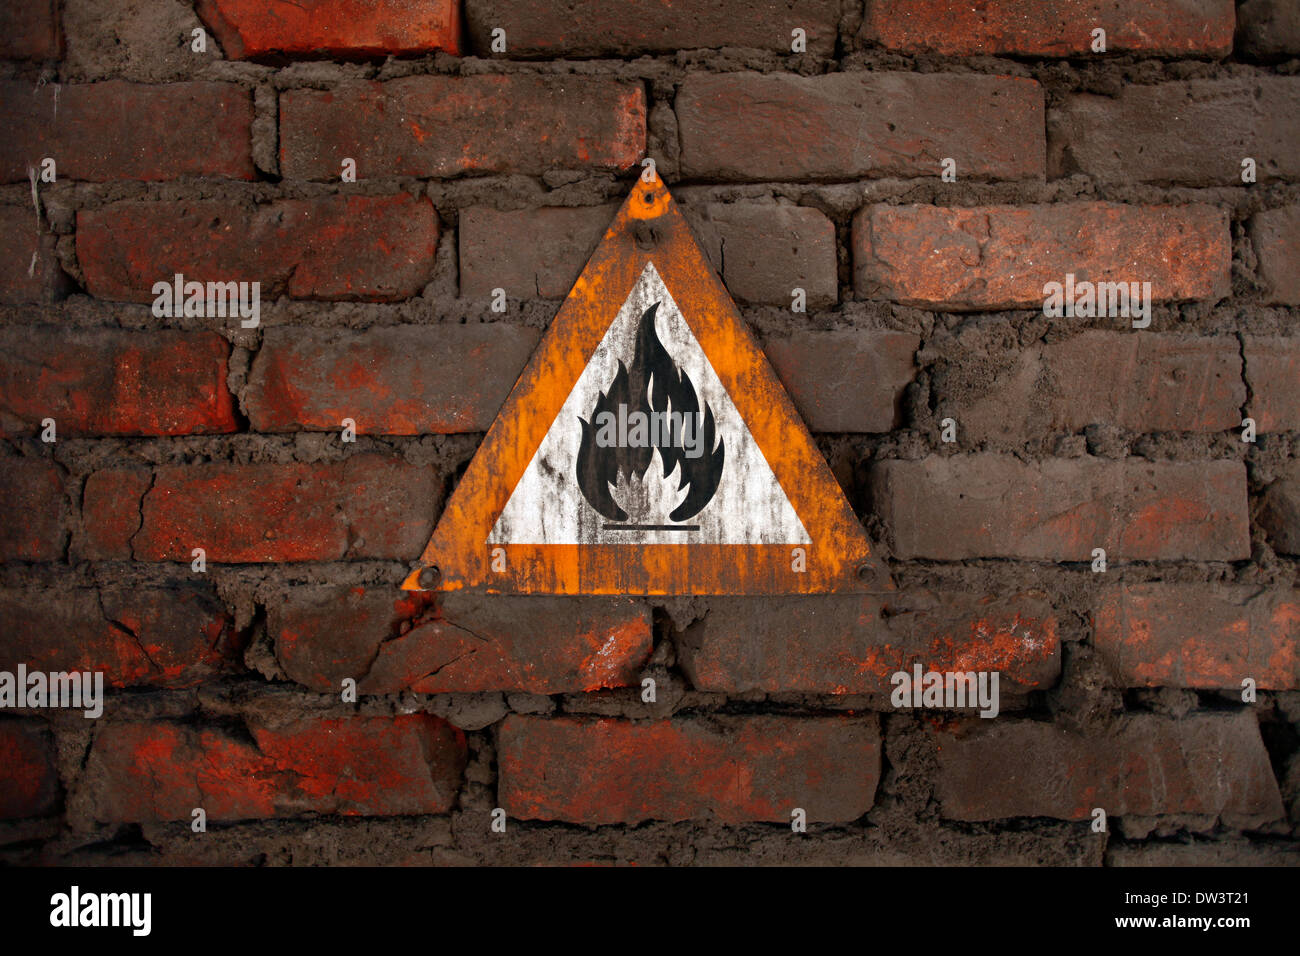 Danger fire signal on a dirty wall - Stock Image